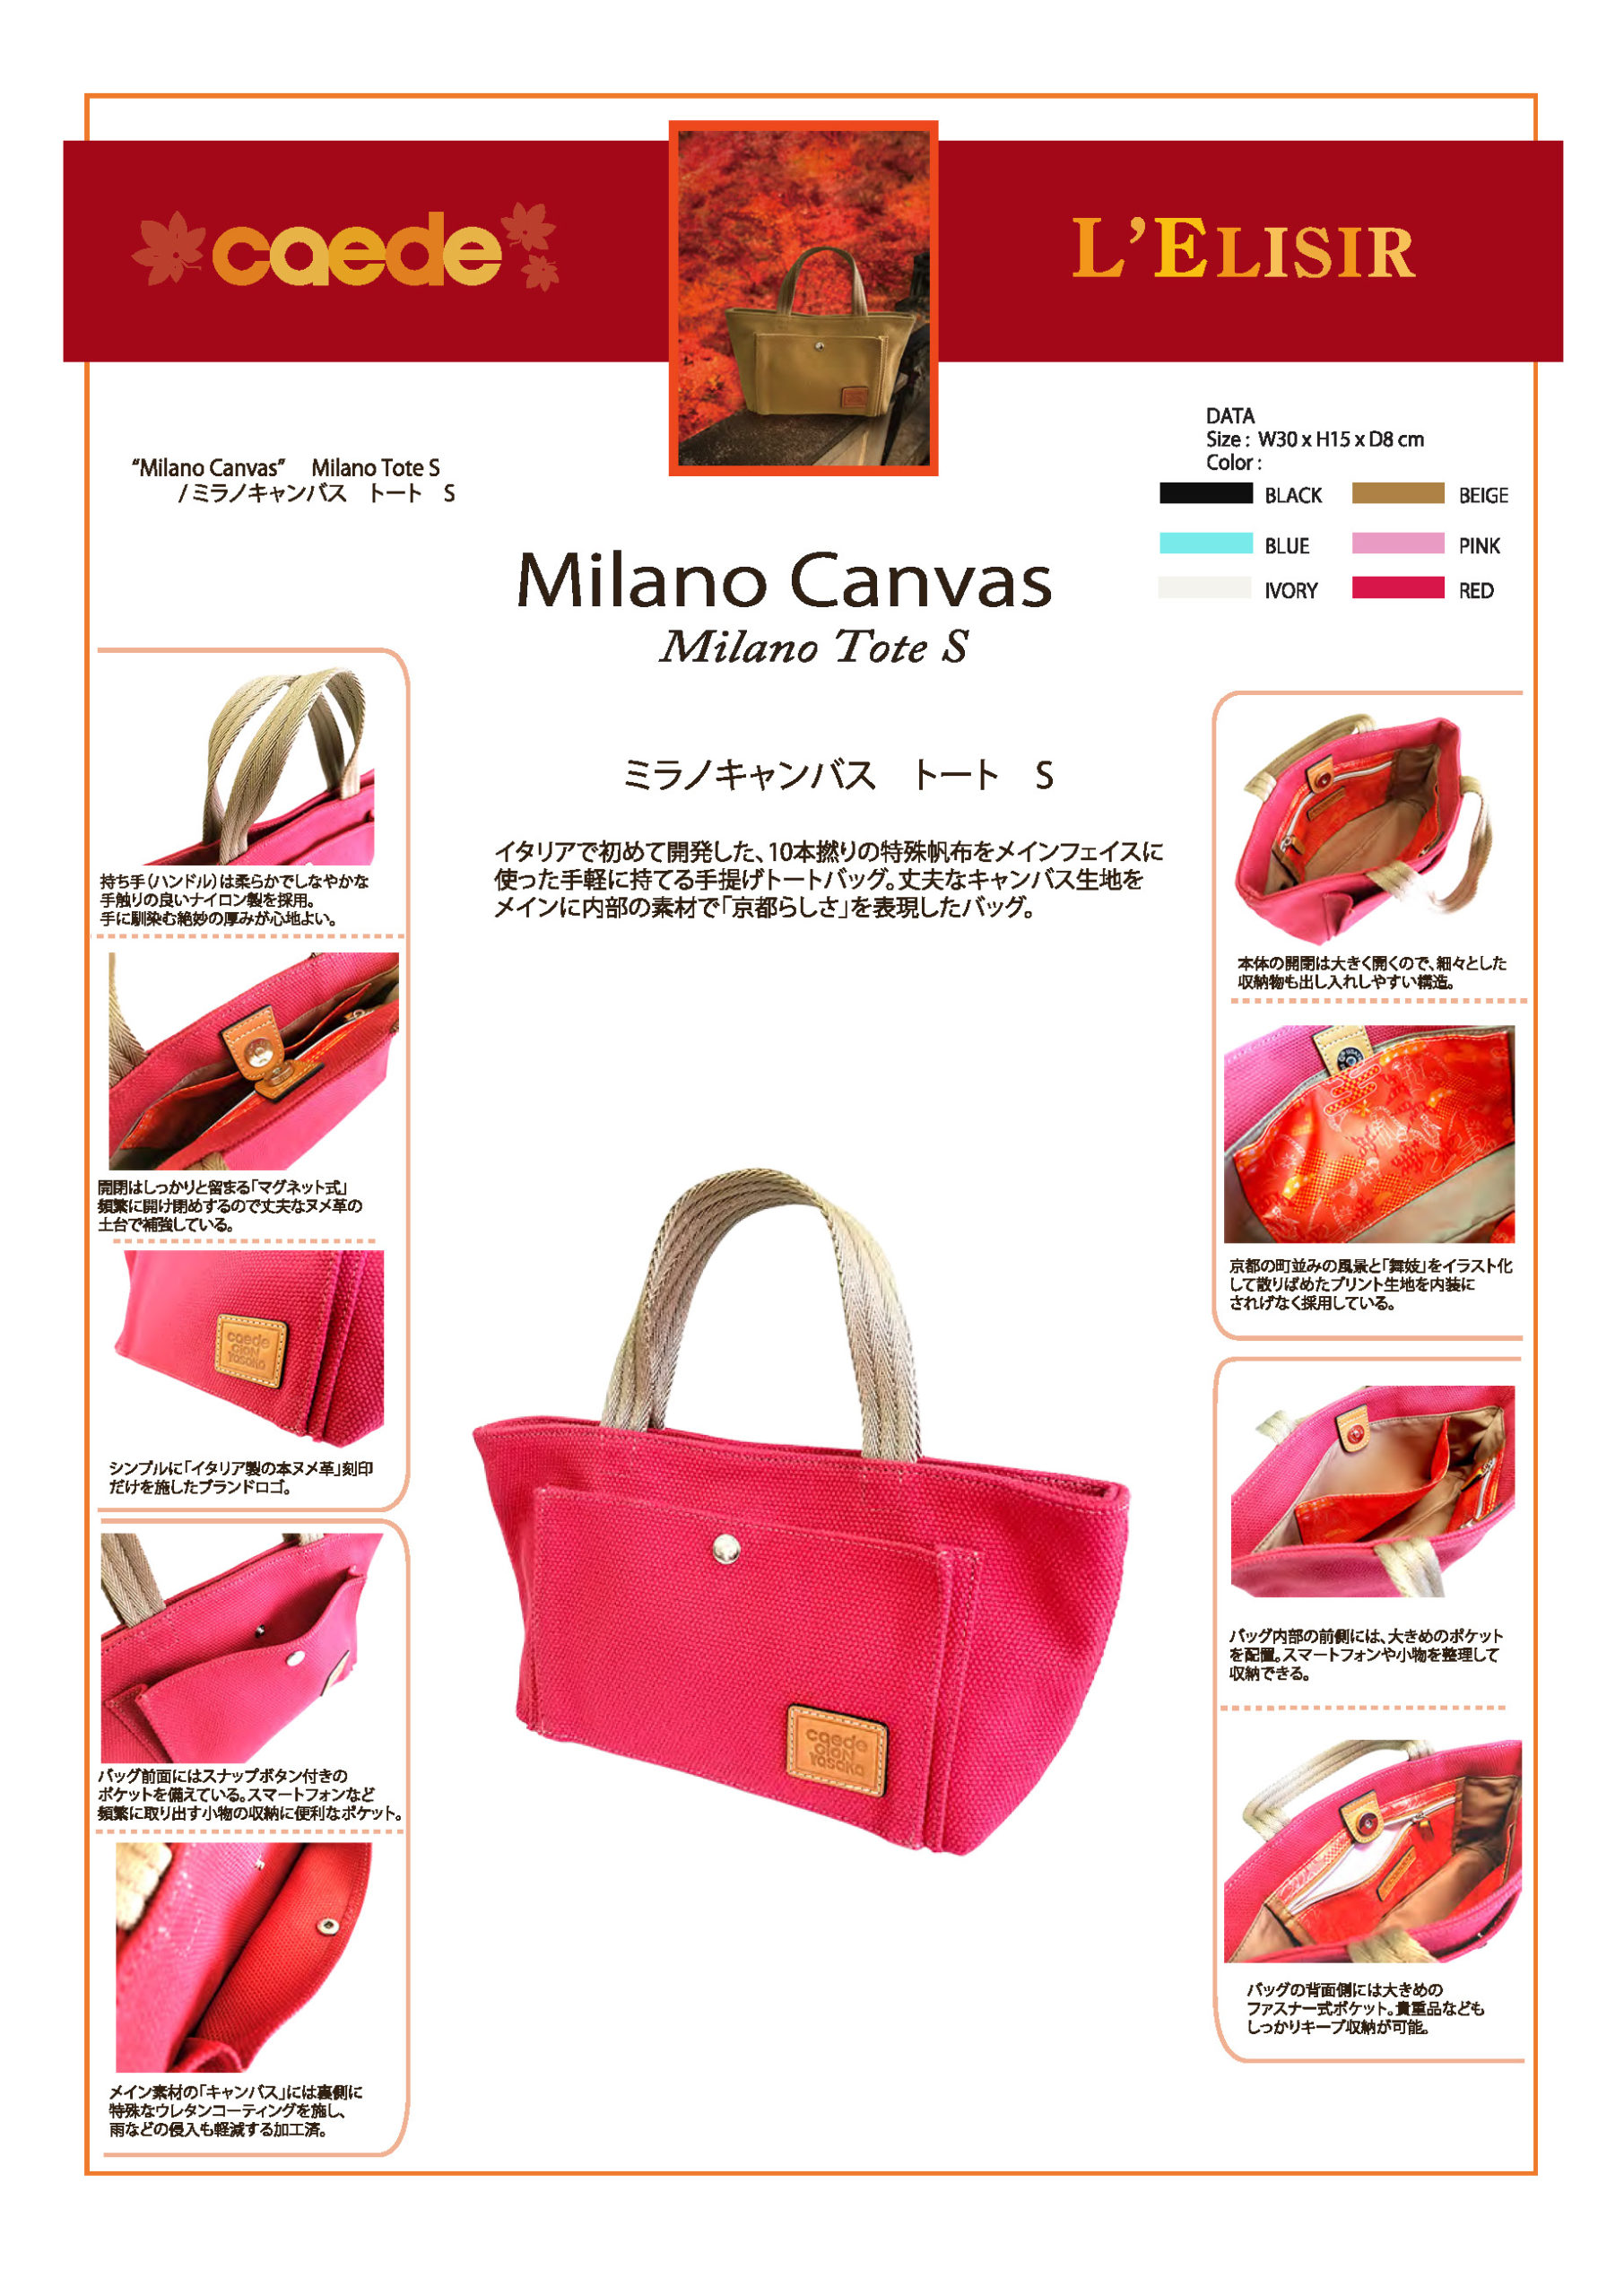 caede京都 collection milano canvas